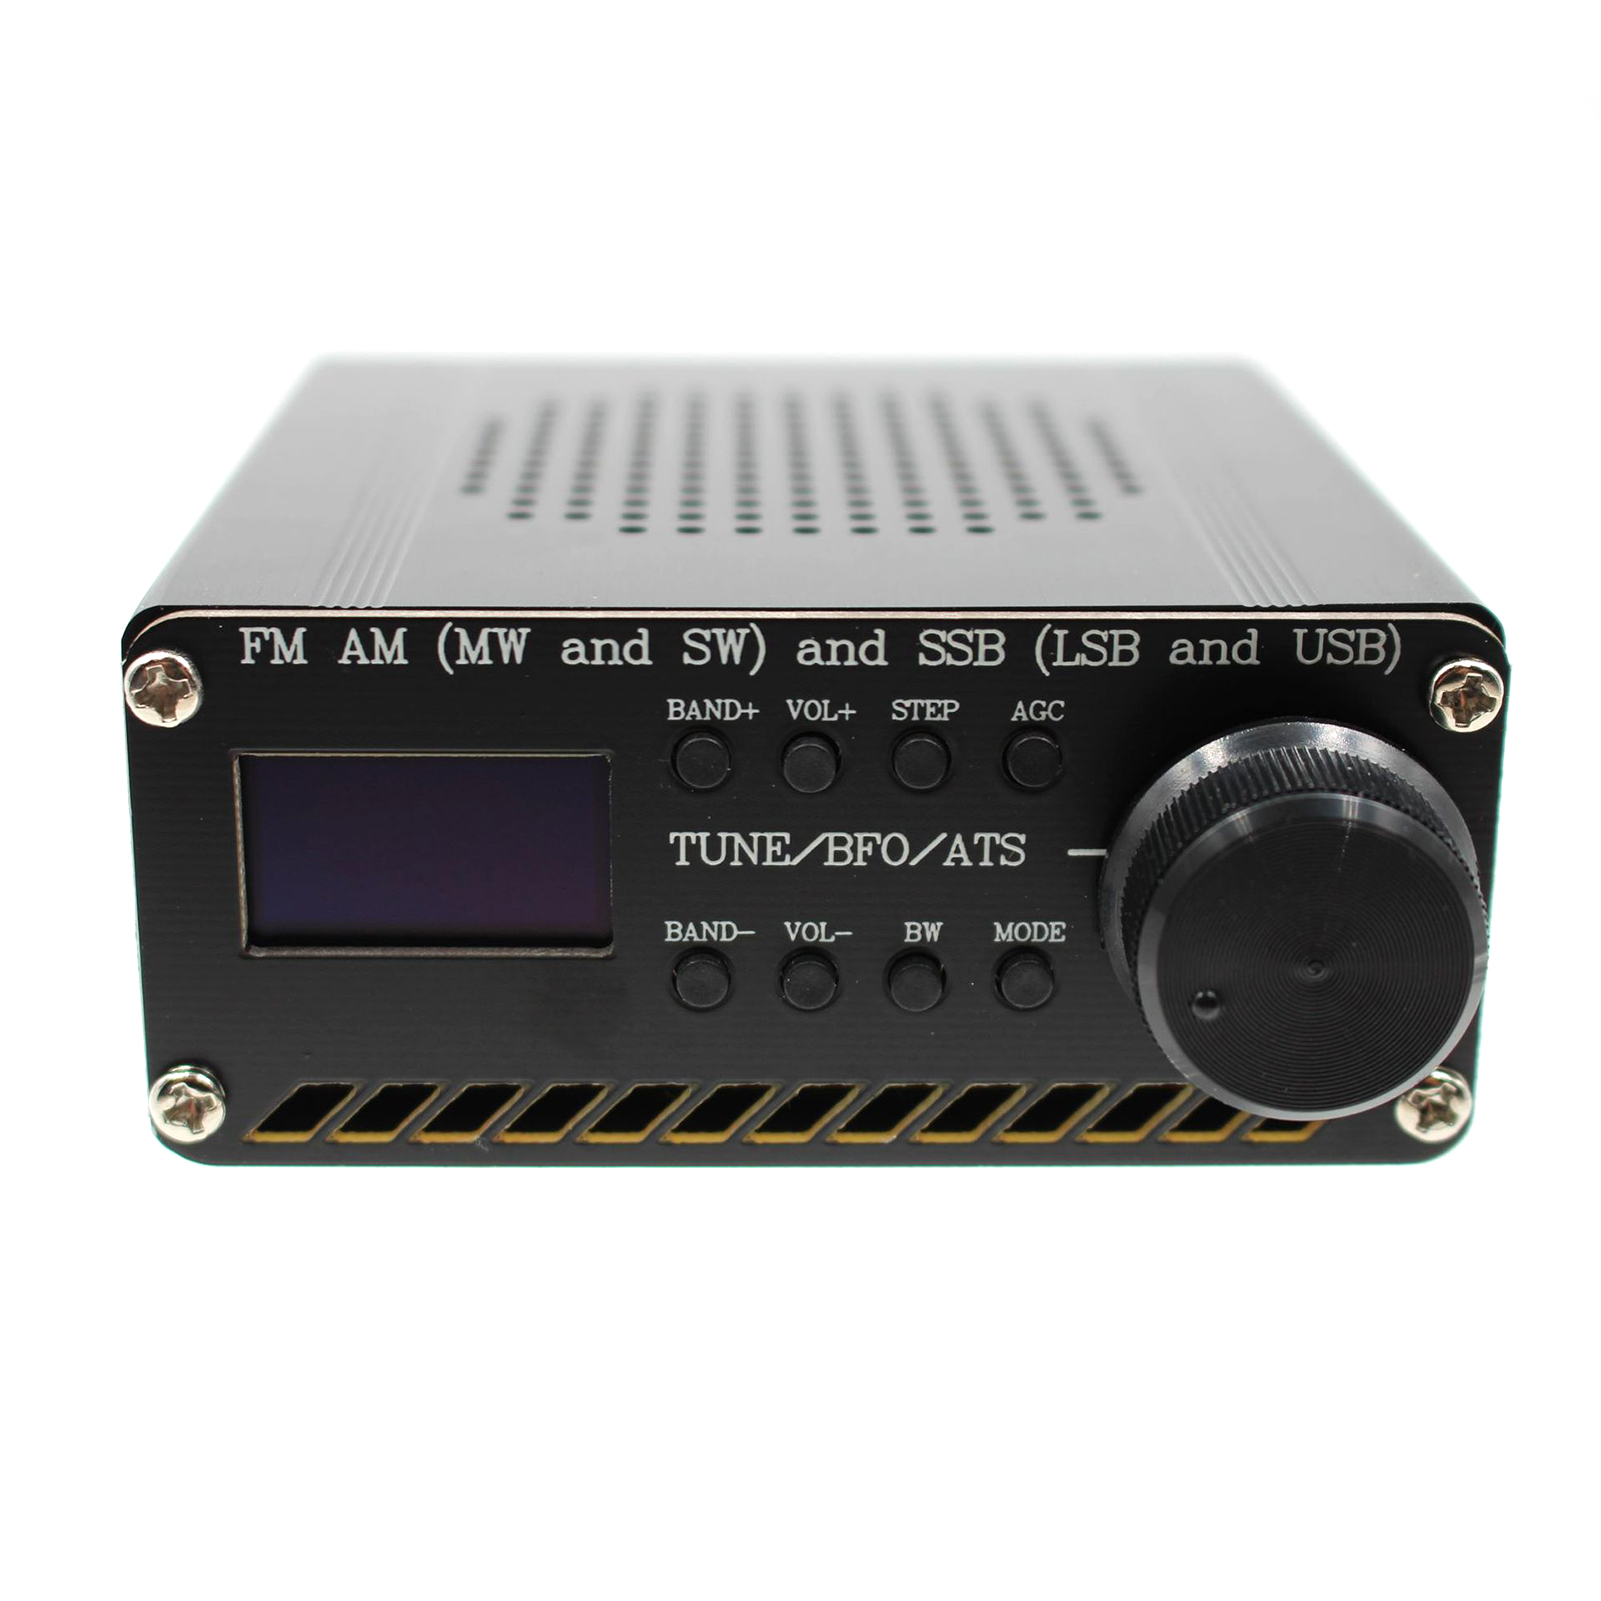 Si4732 MW SW Home Radio Receiver FM AM Black Accessories Portable All Band With Battery Assembled Desktop Antenna Speaker